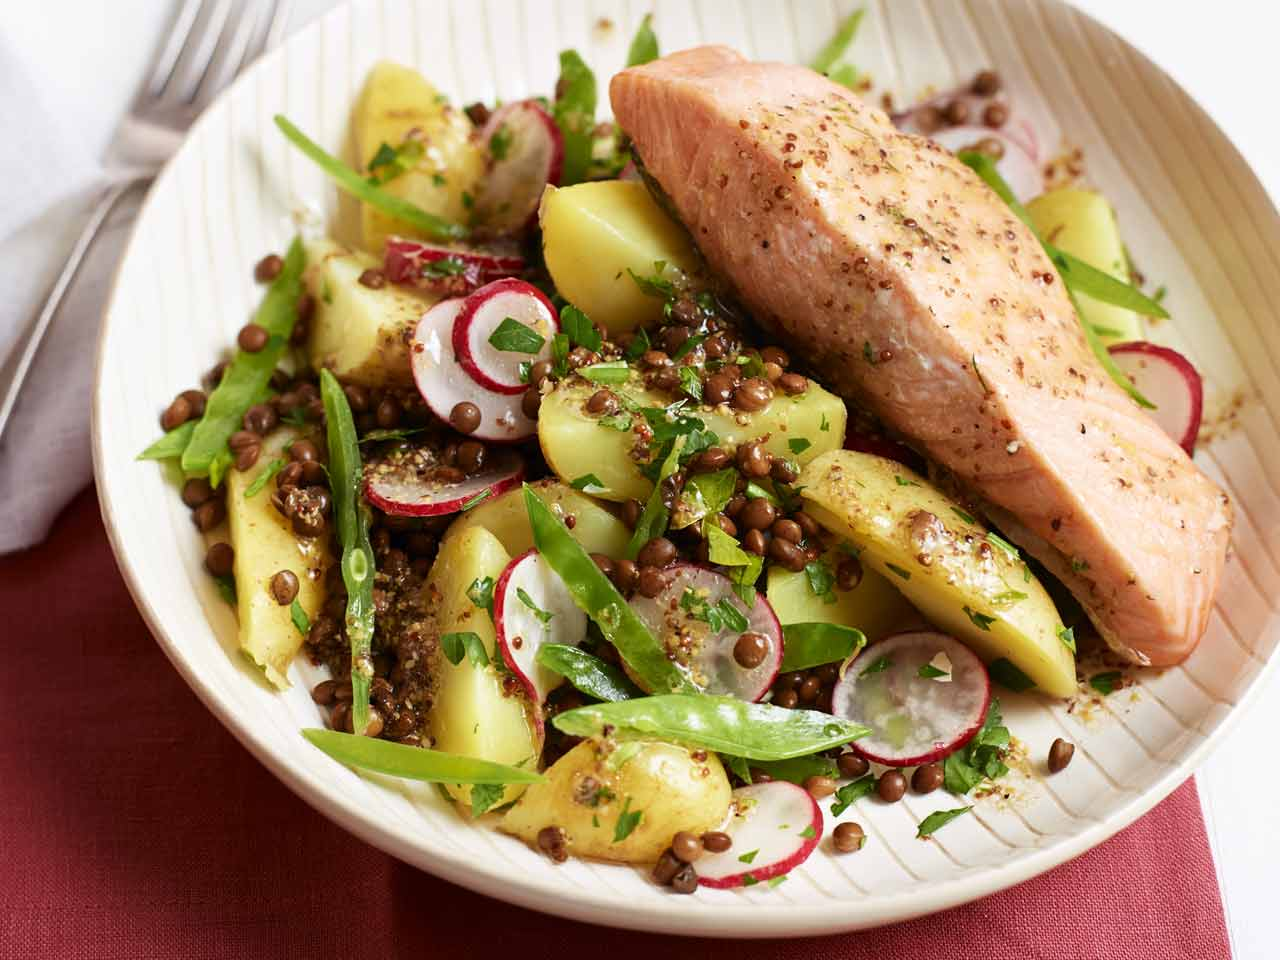 Potato and lentil salad with radish, mange tout with grilled salmon